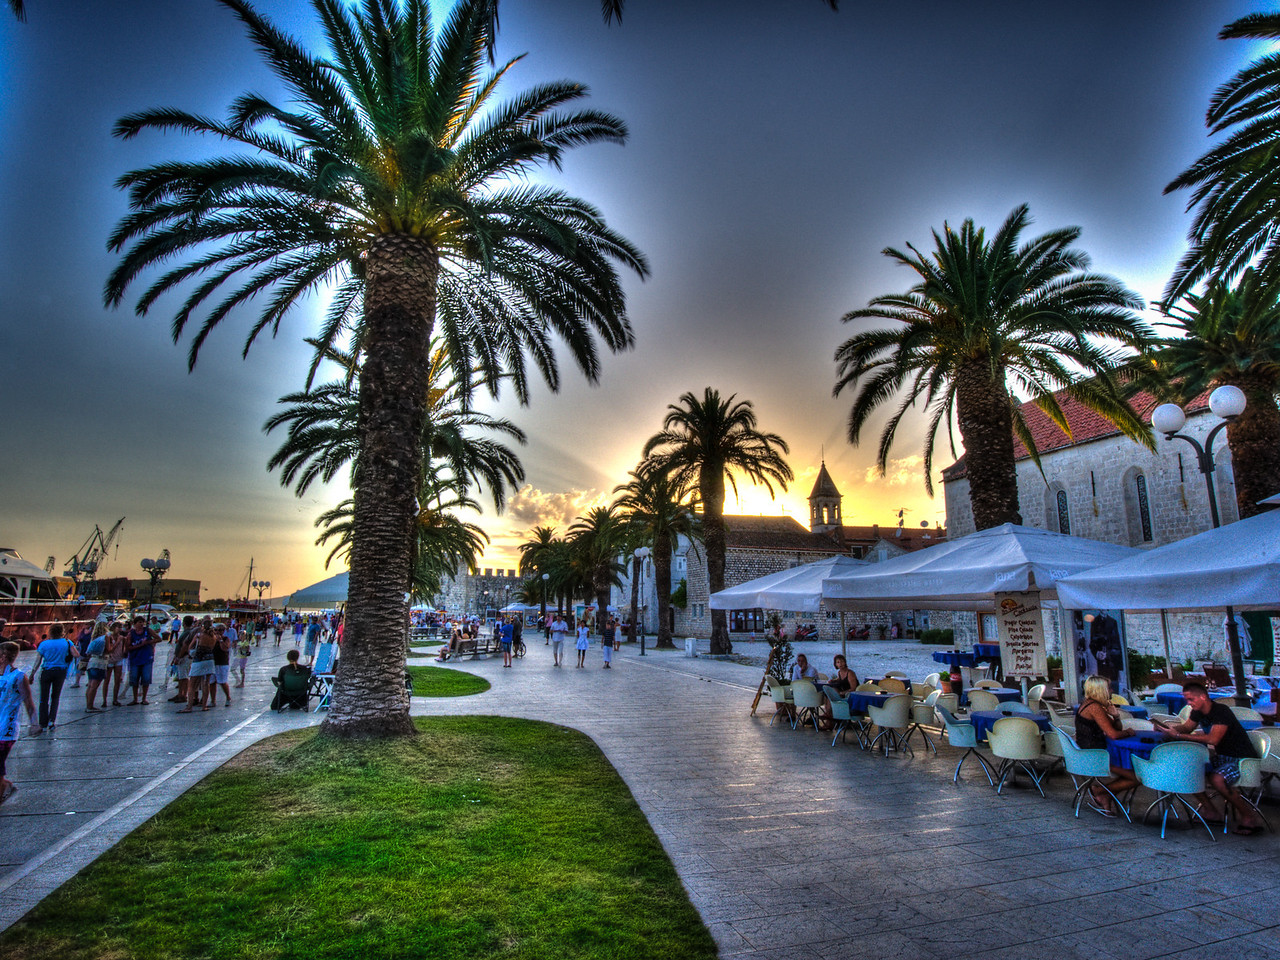 A 7 EV HDR Photograph taken during sunset in the Adriatic beach town of Trogir in Croatia.  Taken with a Nikon d700, edited in Photomatix & lightroom.